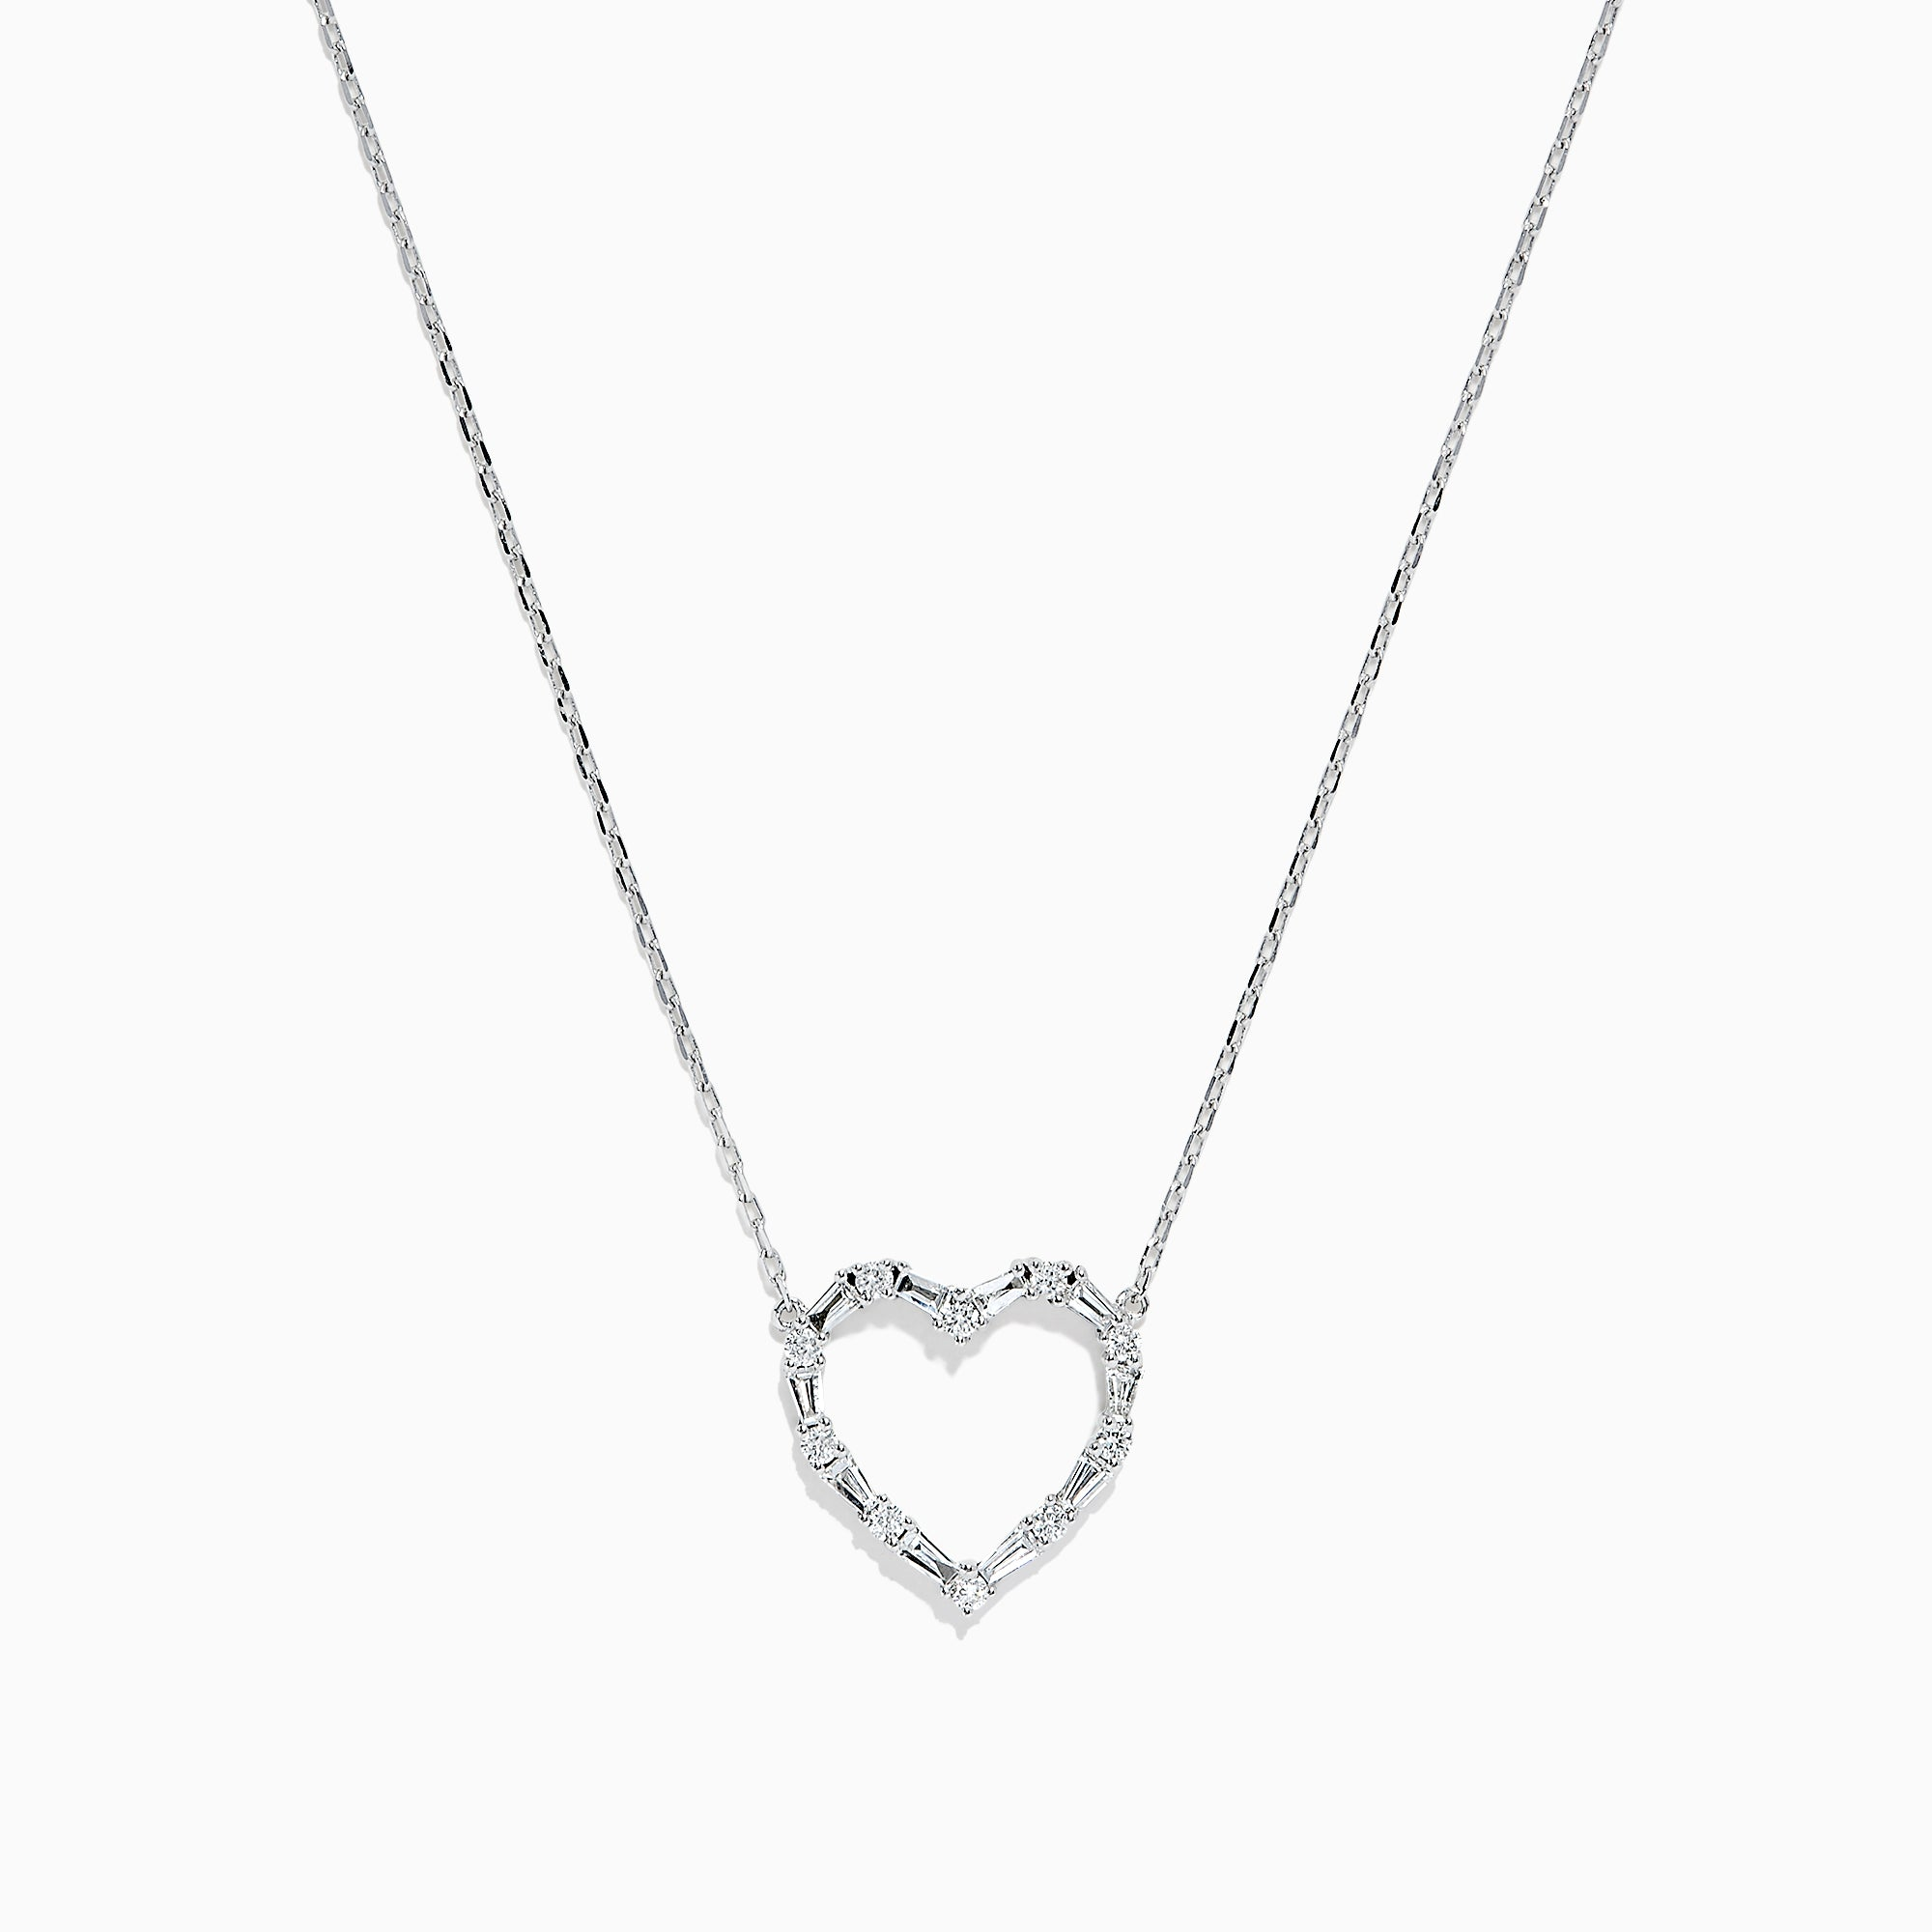 Effy Classique 14K White Gold Diamond Heart Necklace, 0.40 TCW